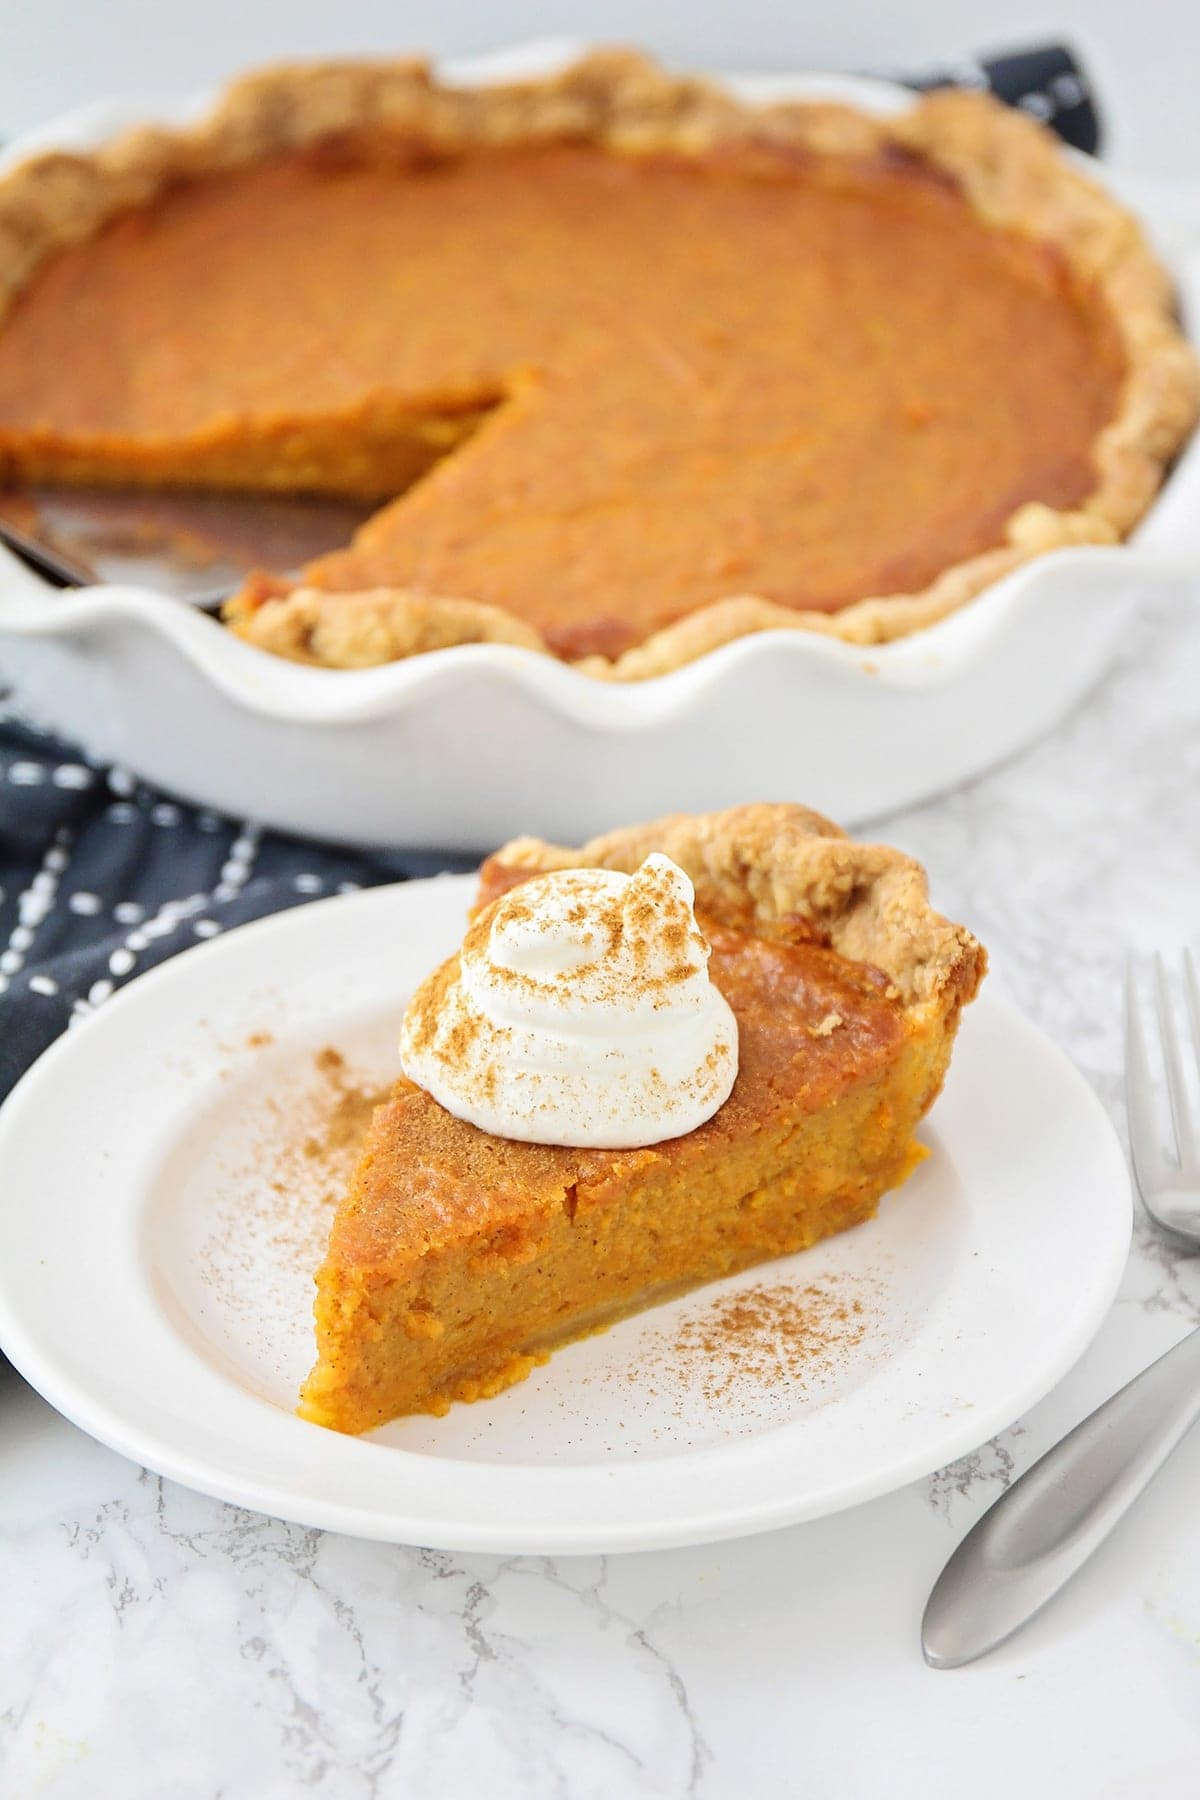 slice of homemade sweet potato pie with a dollop of whipped cream